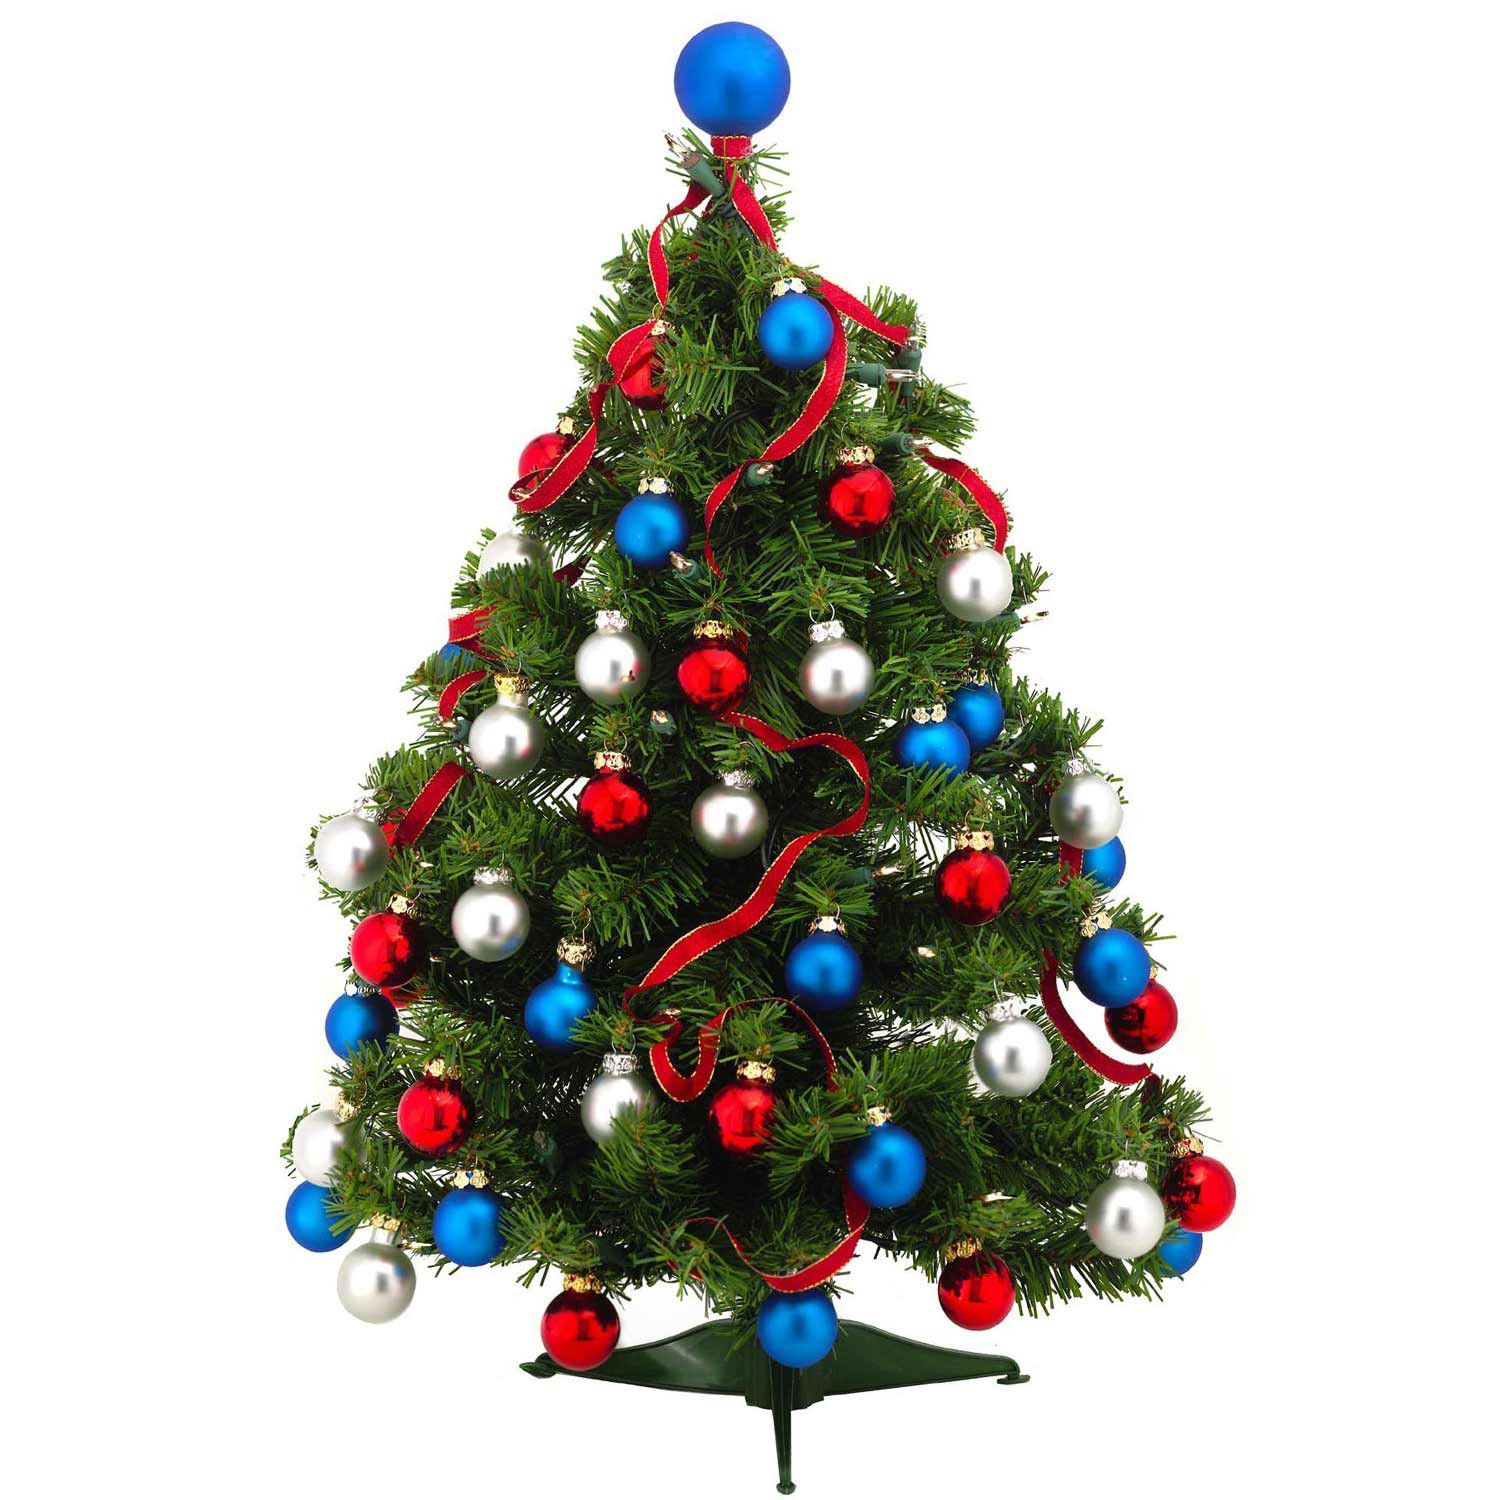 Red white and blue christmas ornaments google search christmas decorating pinterest